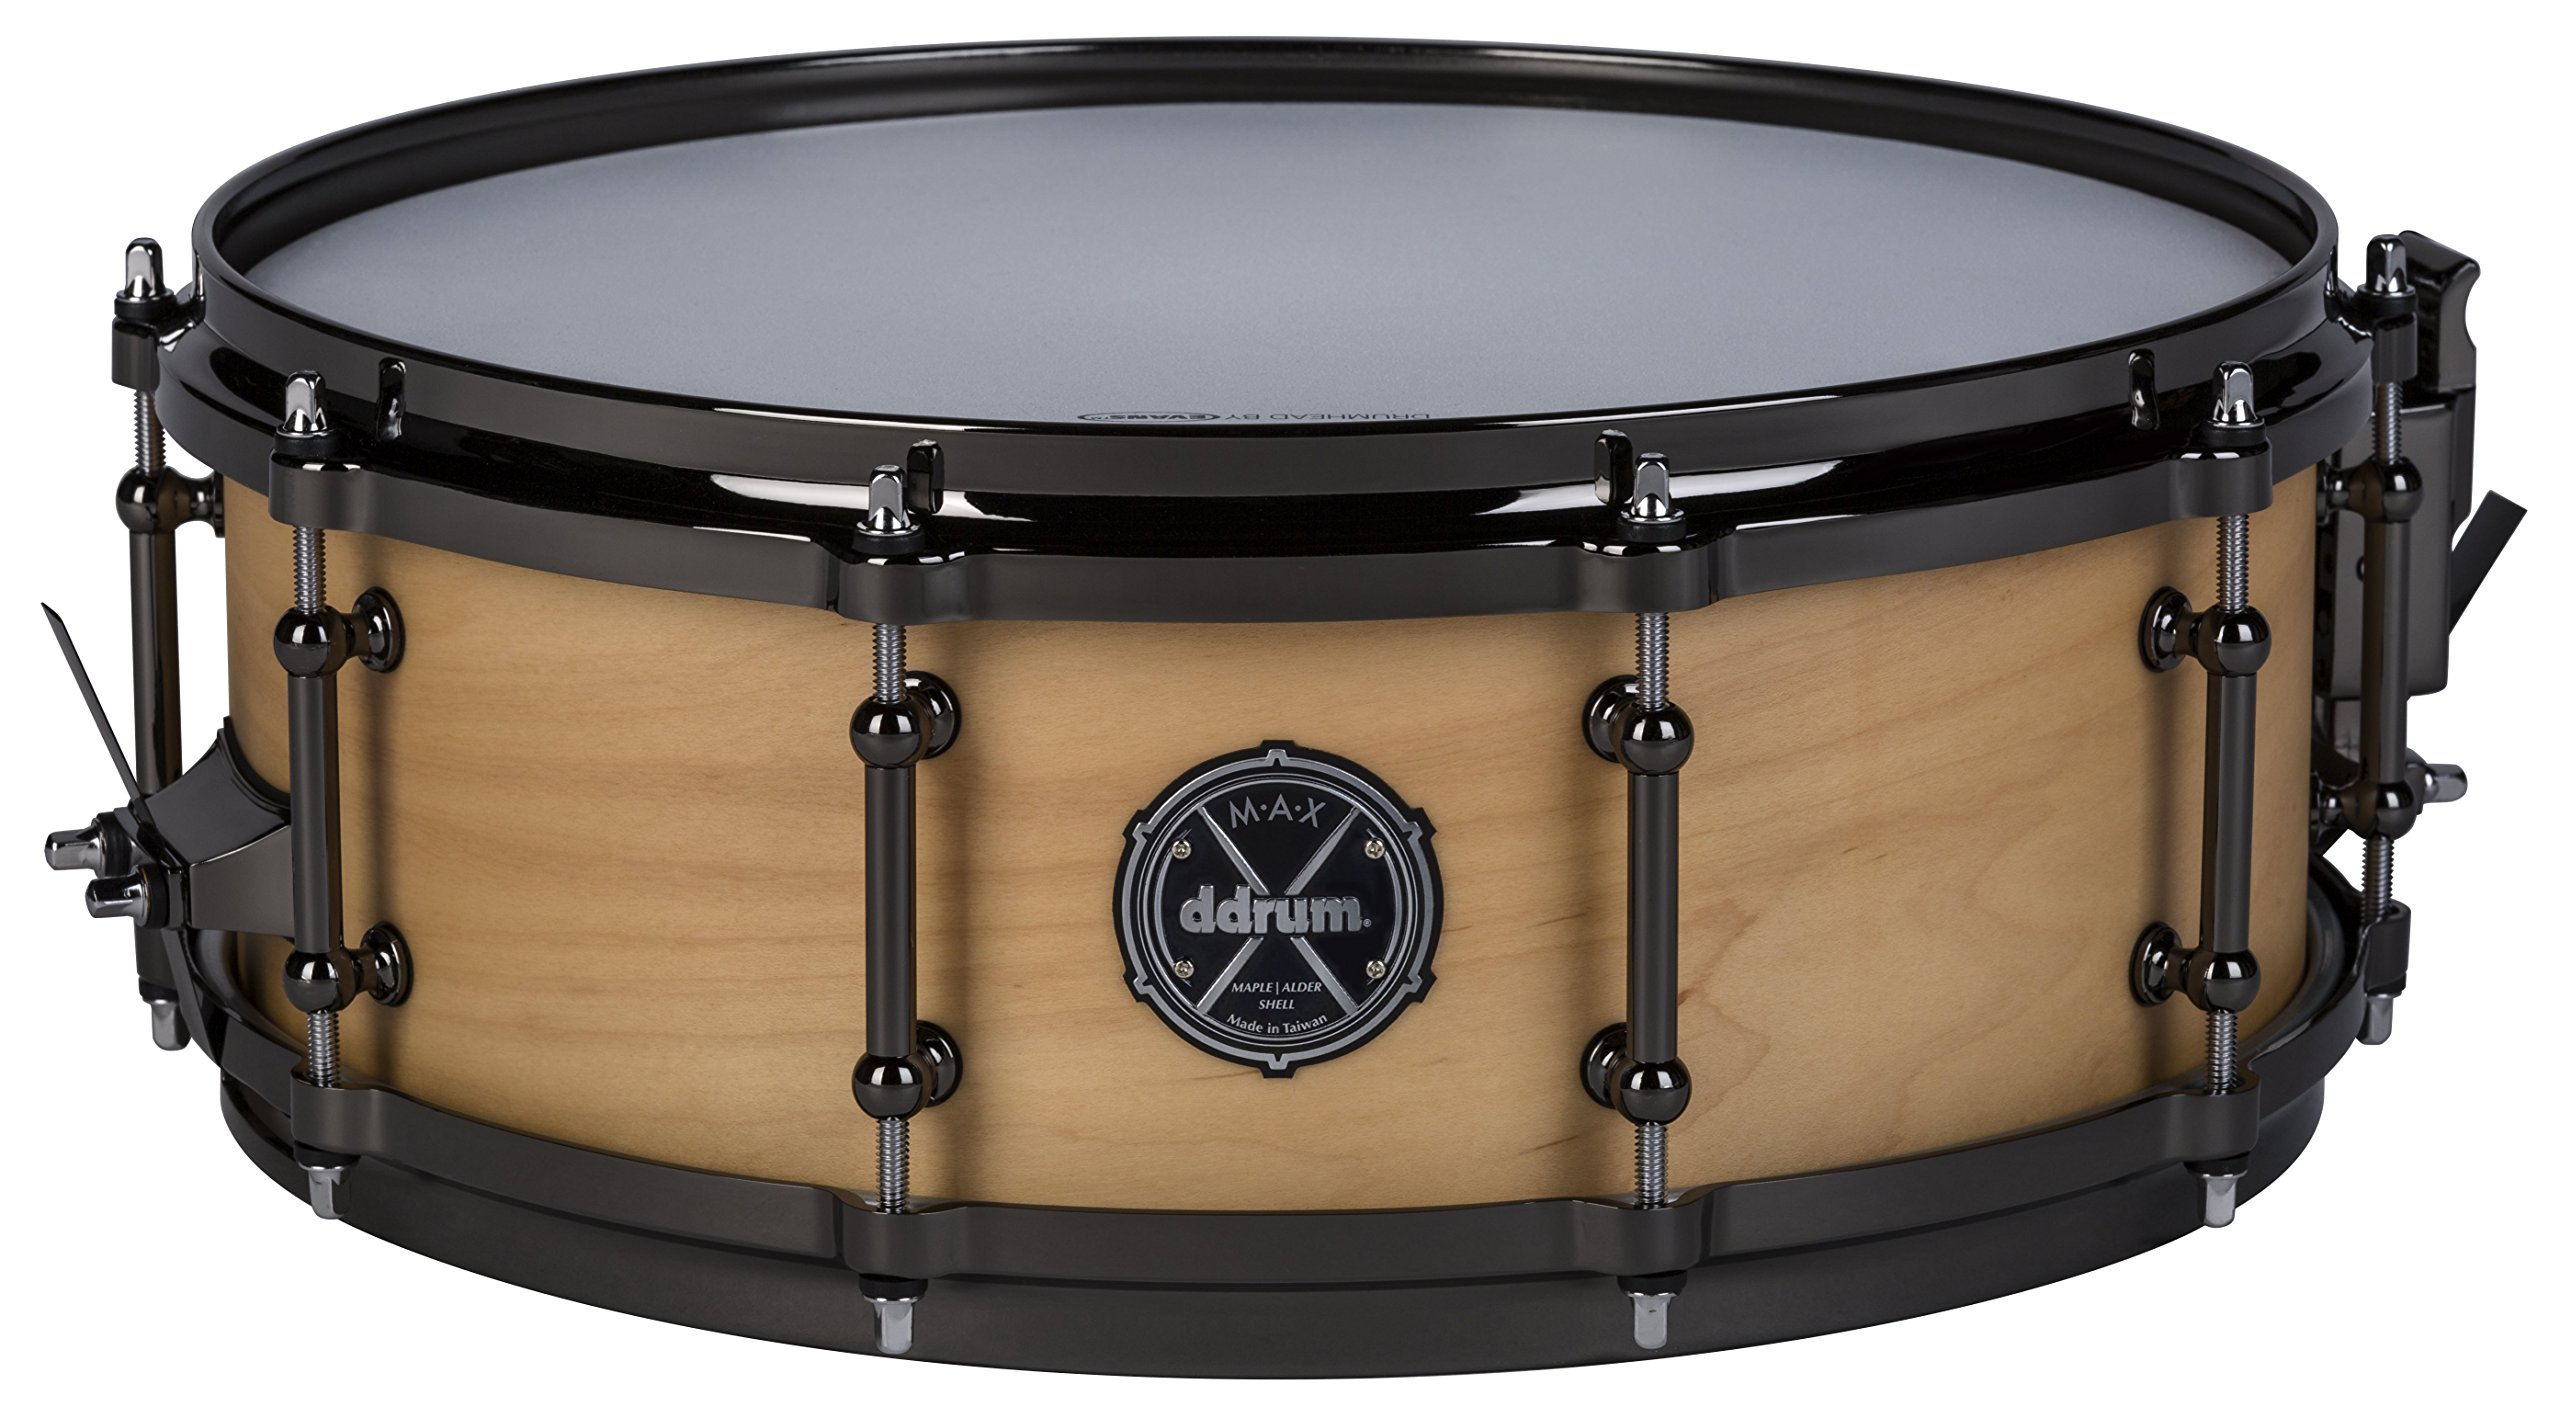 ddrum MAX Series 5x14 Snare Drum-Satin Natural (MAXSD5X14SN) by Ddrum